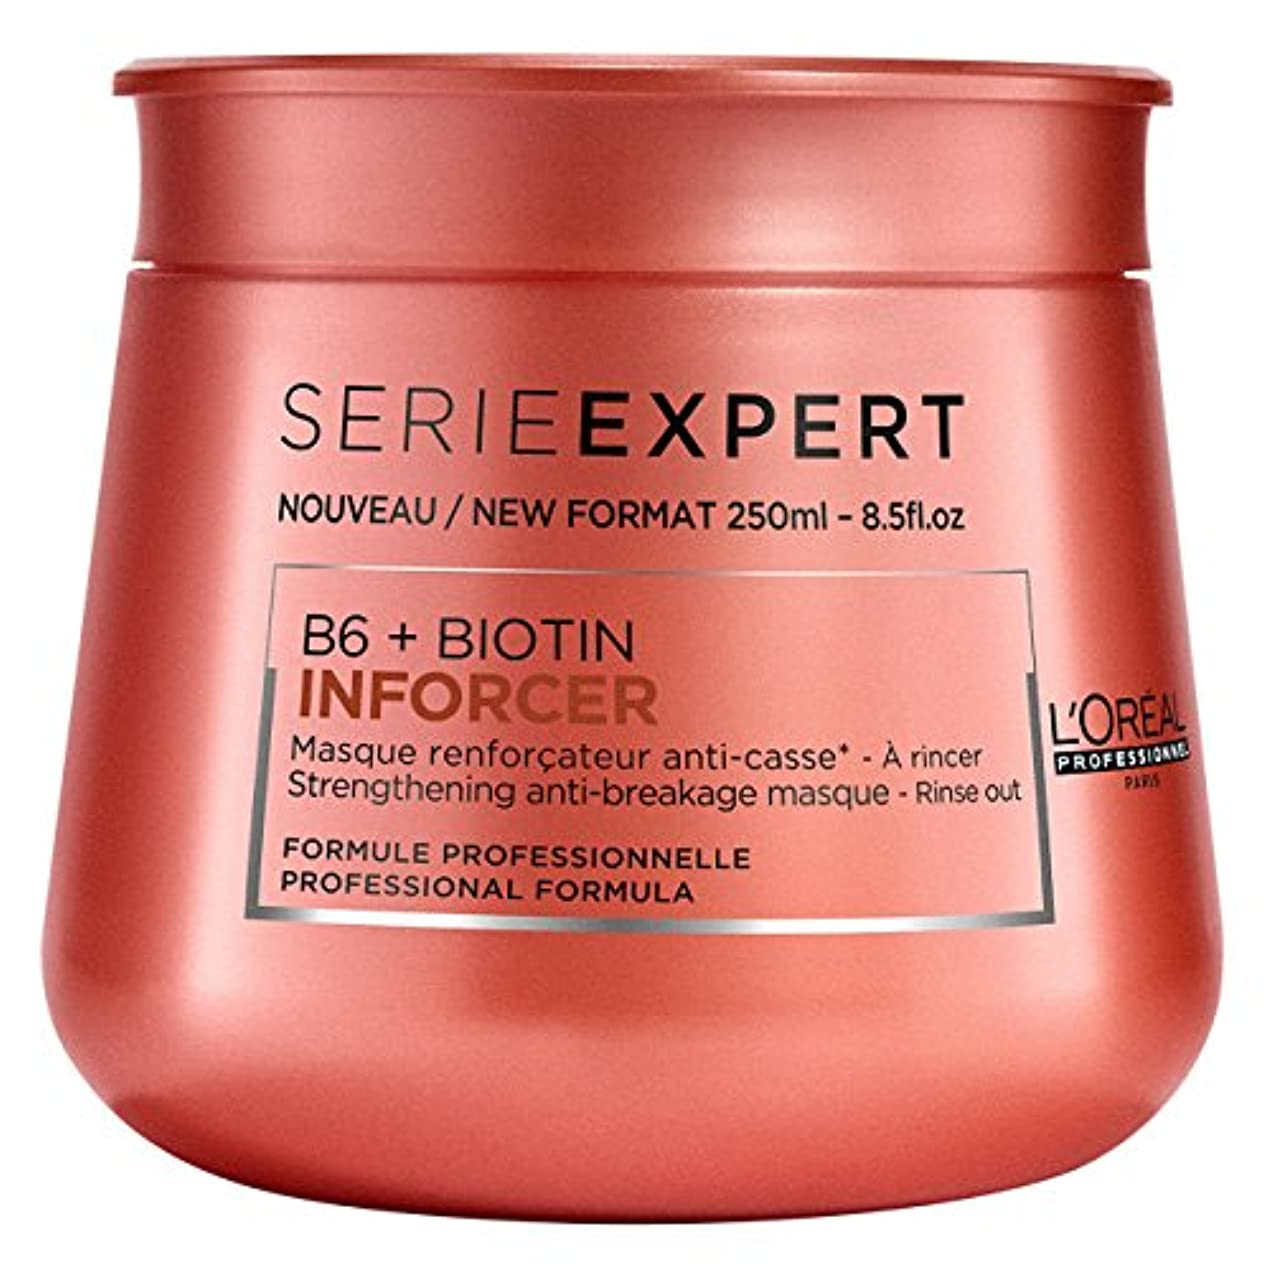 爬虫類チータービートL'Oreal Serie Expert B6 + Biotin INFORCER Strengthening Anti-Breakage Masque 250 ml [並行輸入品]